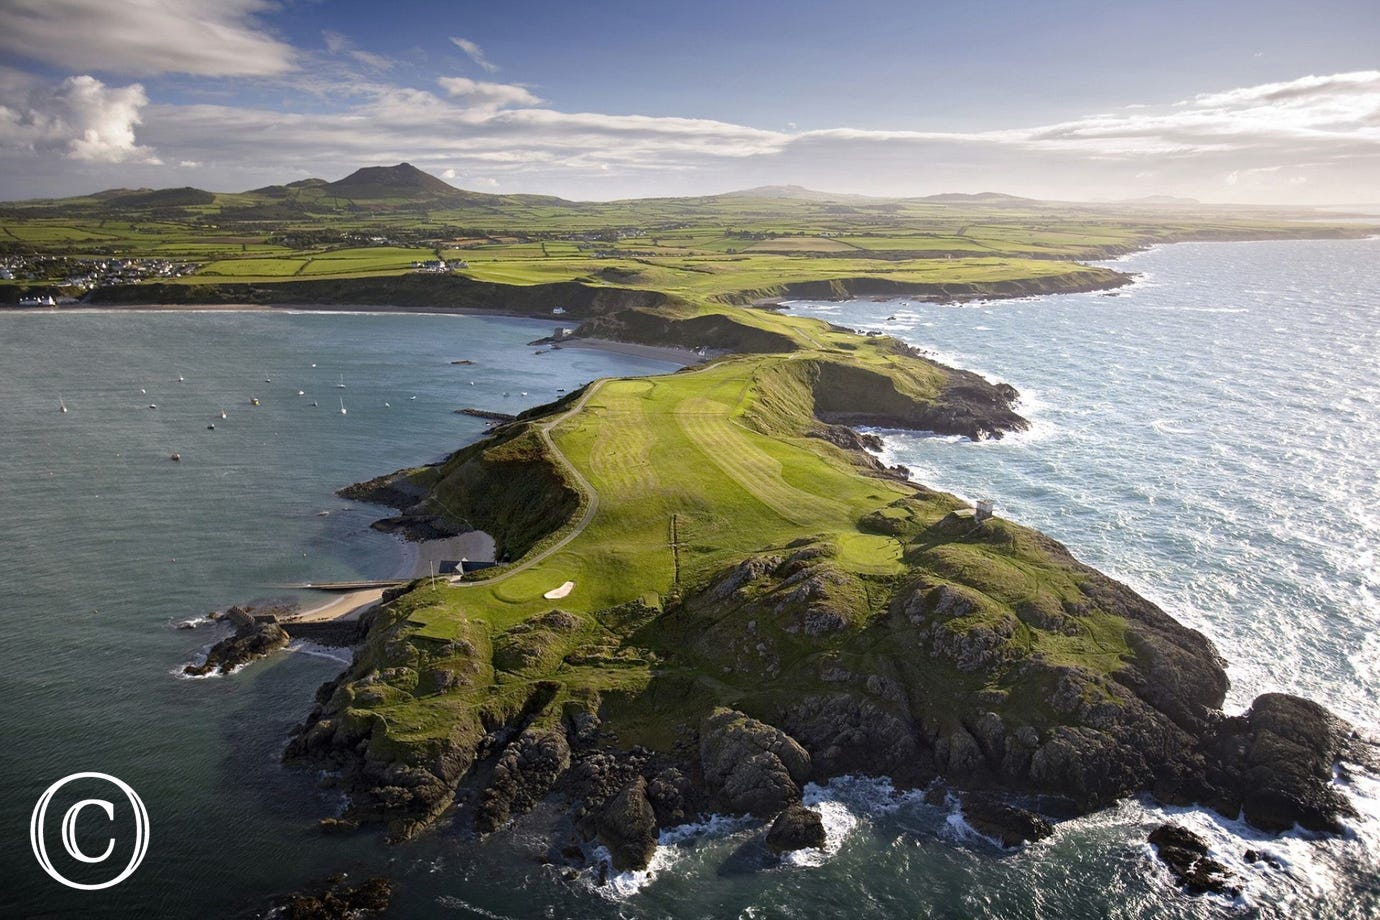 Nefyn and District Golf Club (2 miles) - an 18 hole courses set in spectacular coastal scenery